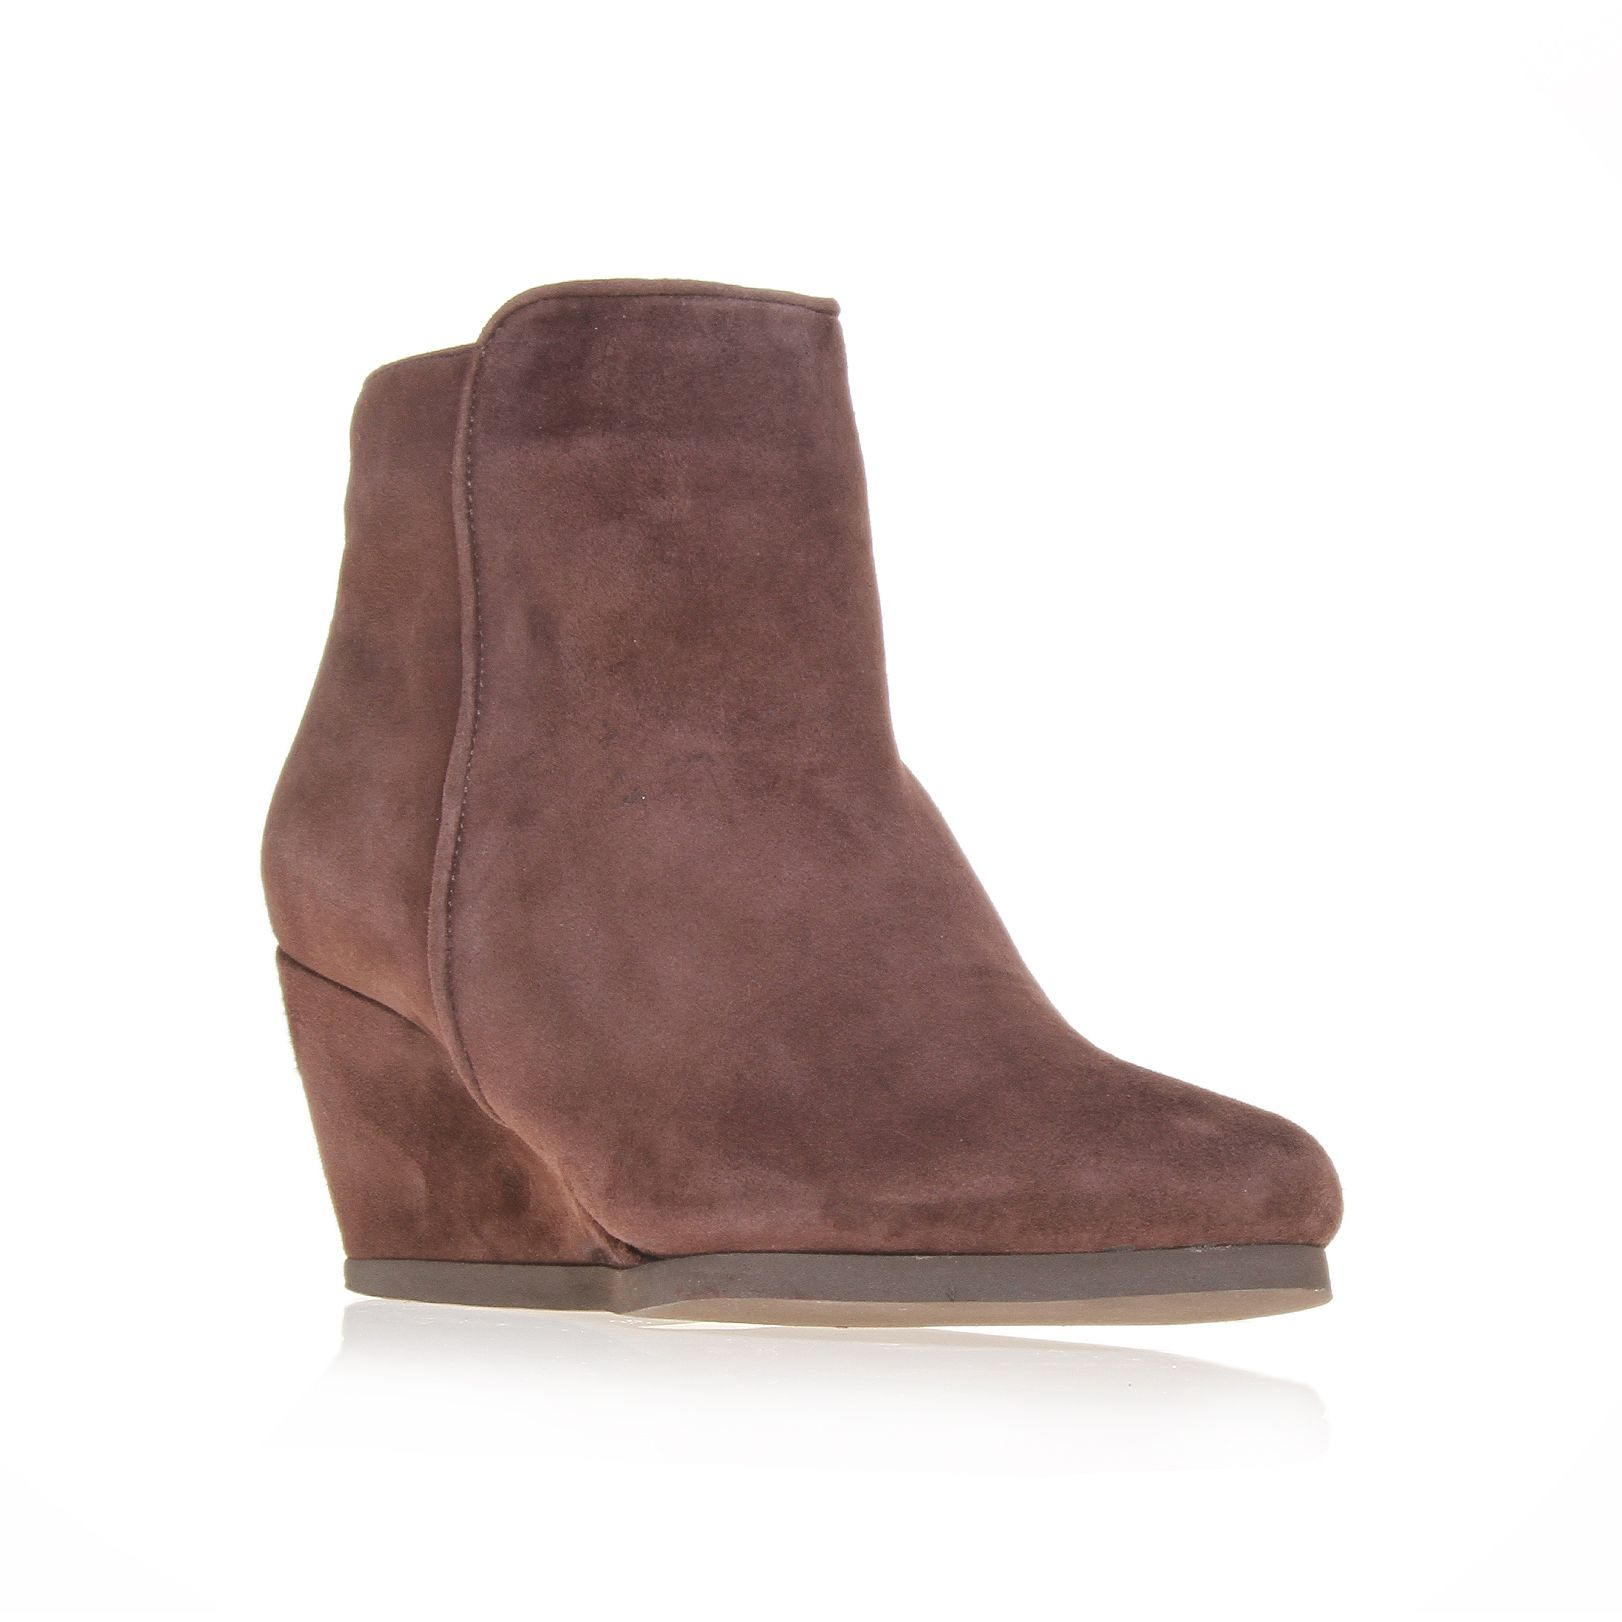 Carvela Kurt Geiger Saddle Boots In Brown | Lyst